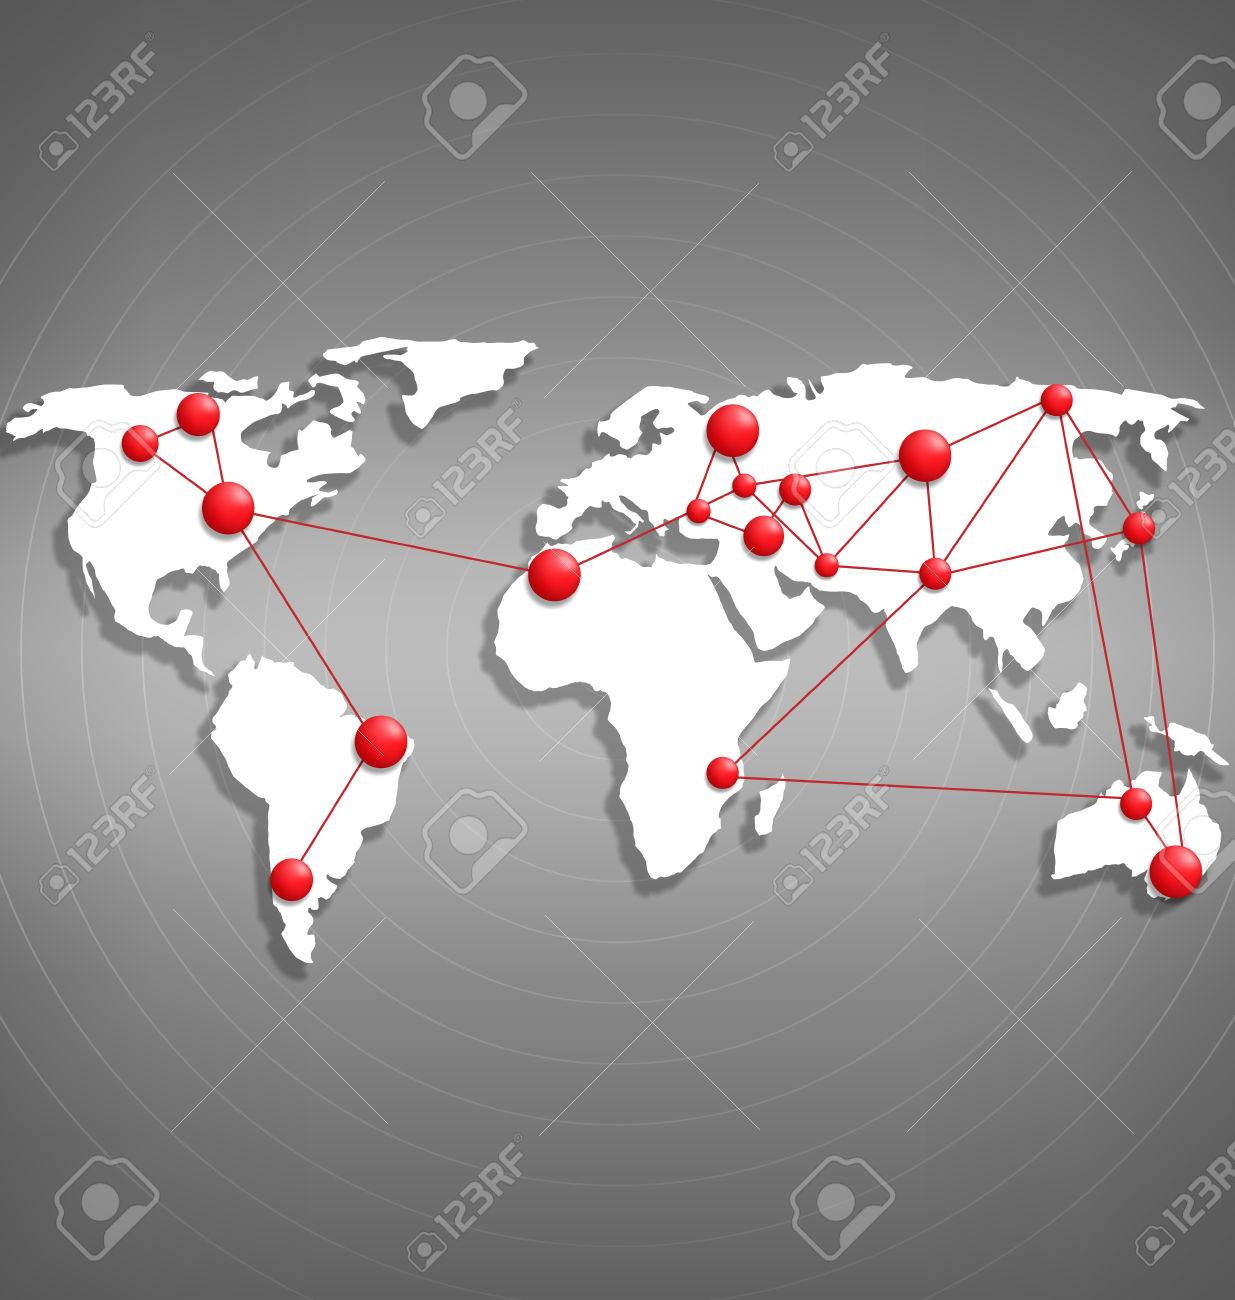 World map with red point marks on grayscale background - 35703419